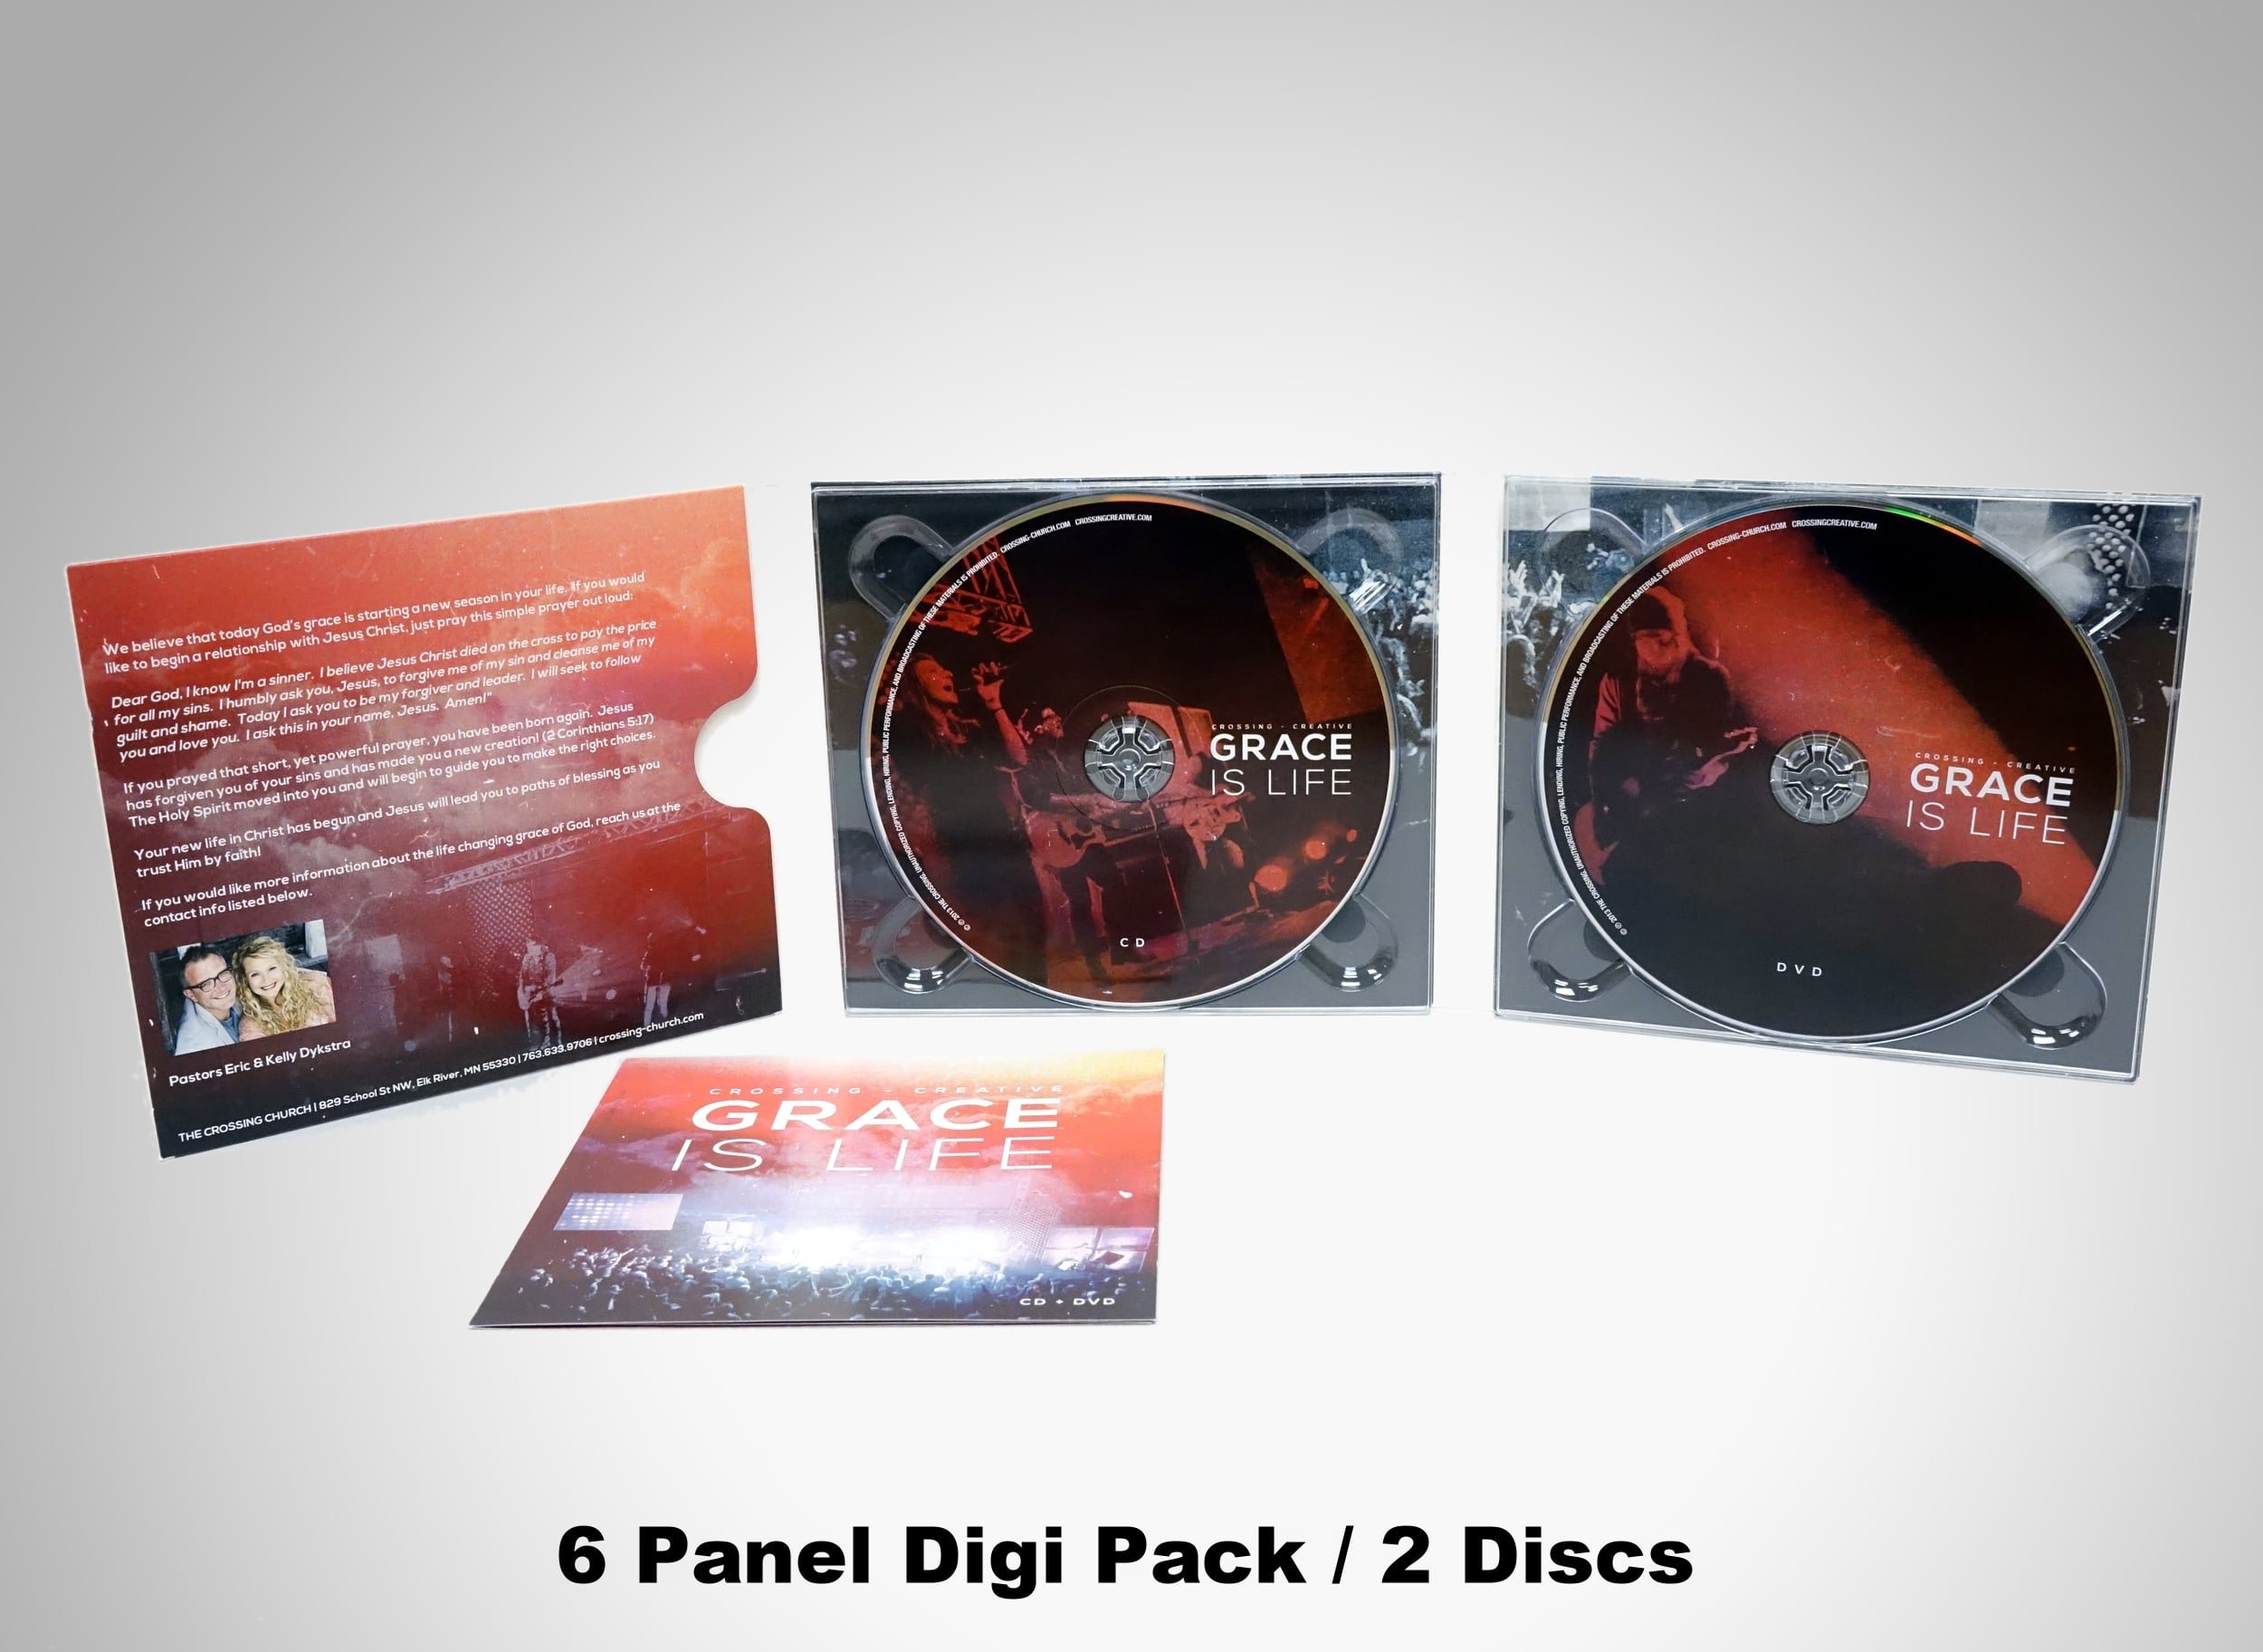 6 Panel Digi Page_2 Discs with Booklet.jpg